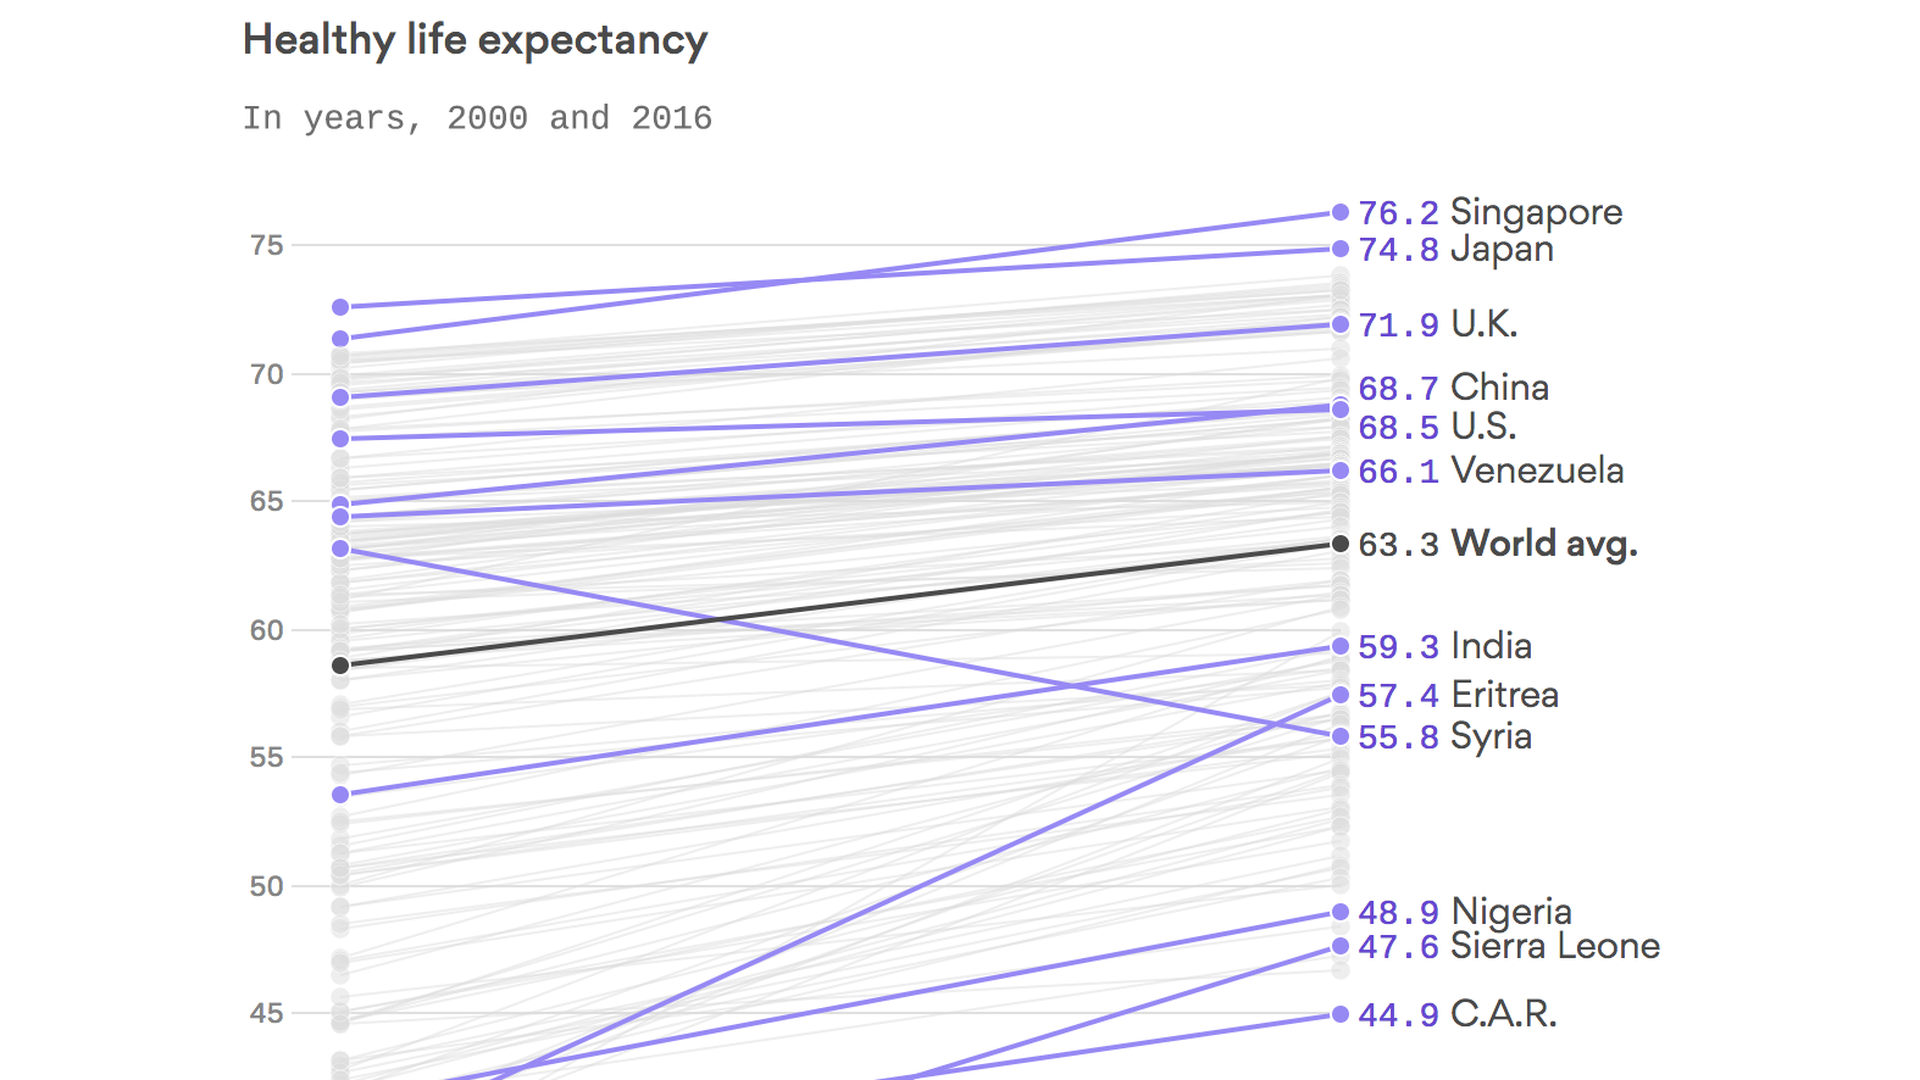 The life expectancy for every country in the world